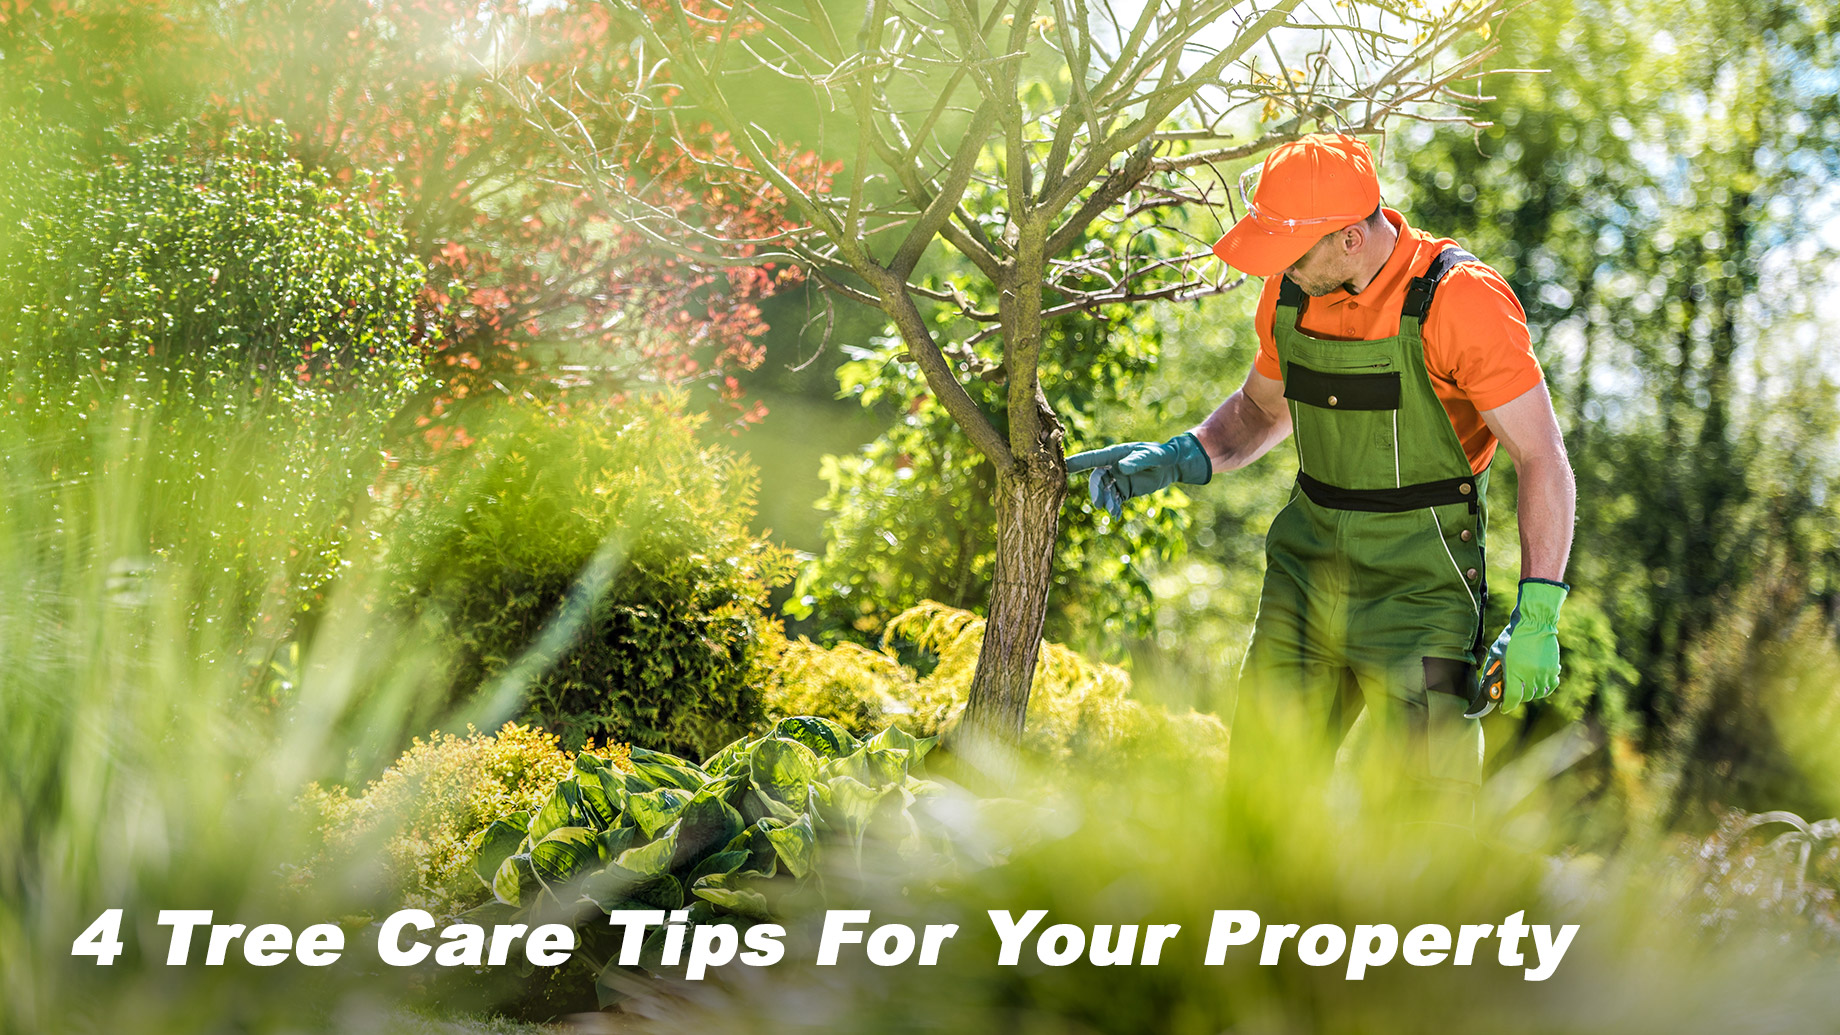 4 Tree Care Tips For Your Property